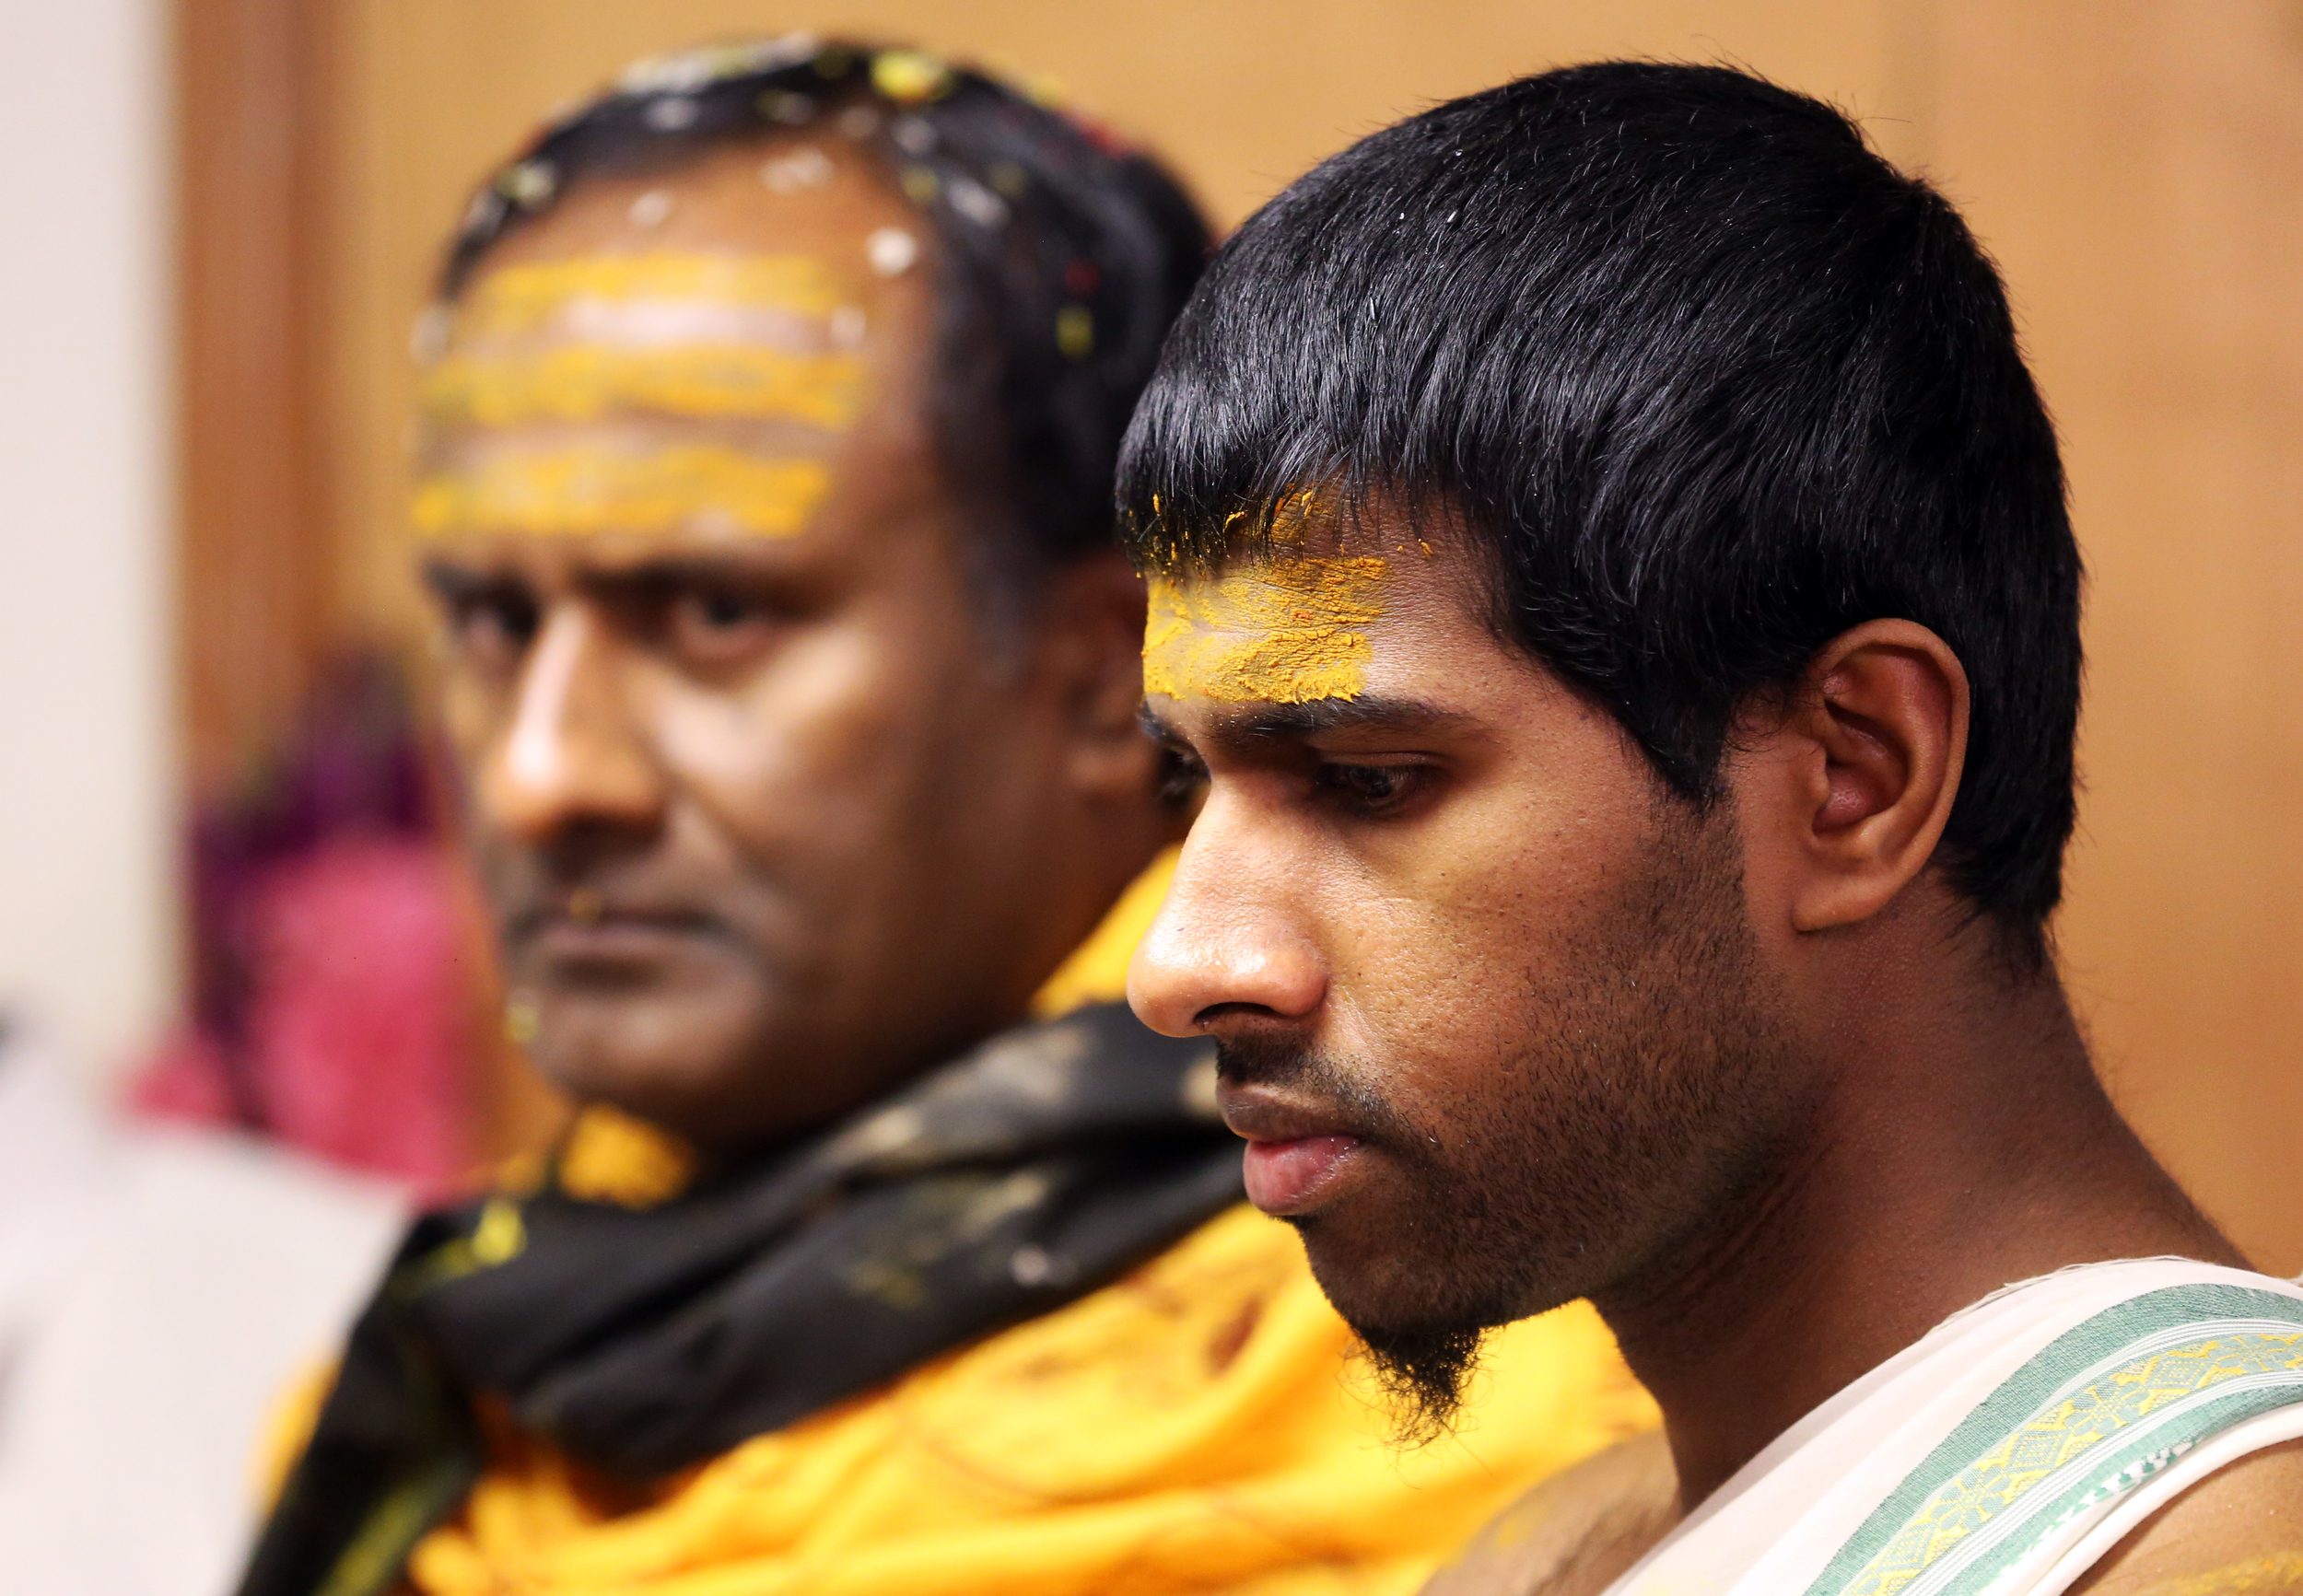 Two Hindu men during a traditional service at a temple in Wilton, Conn.